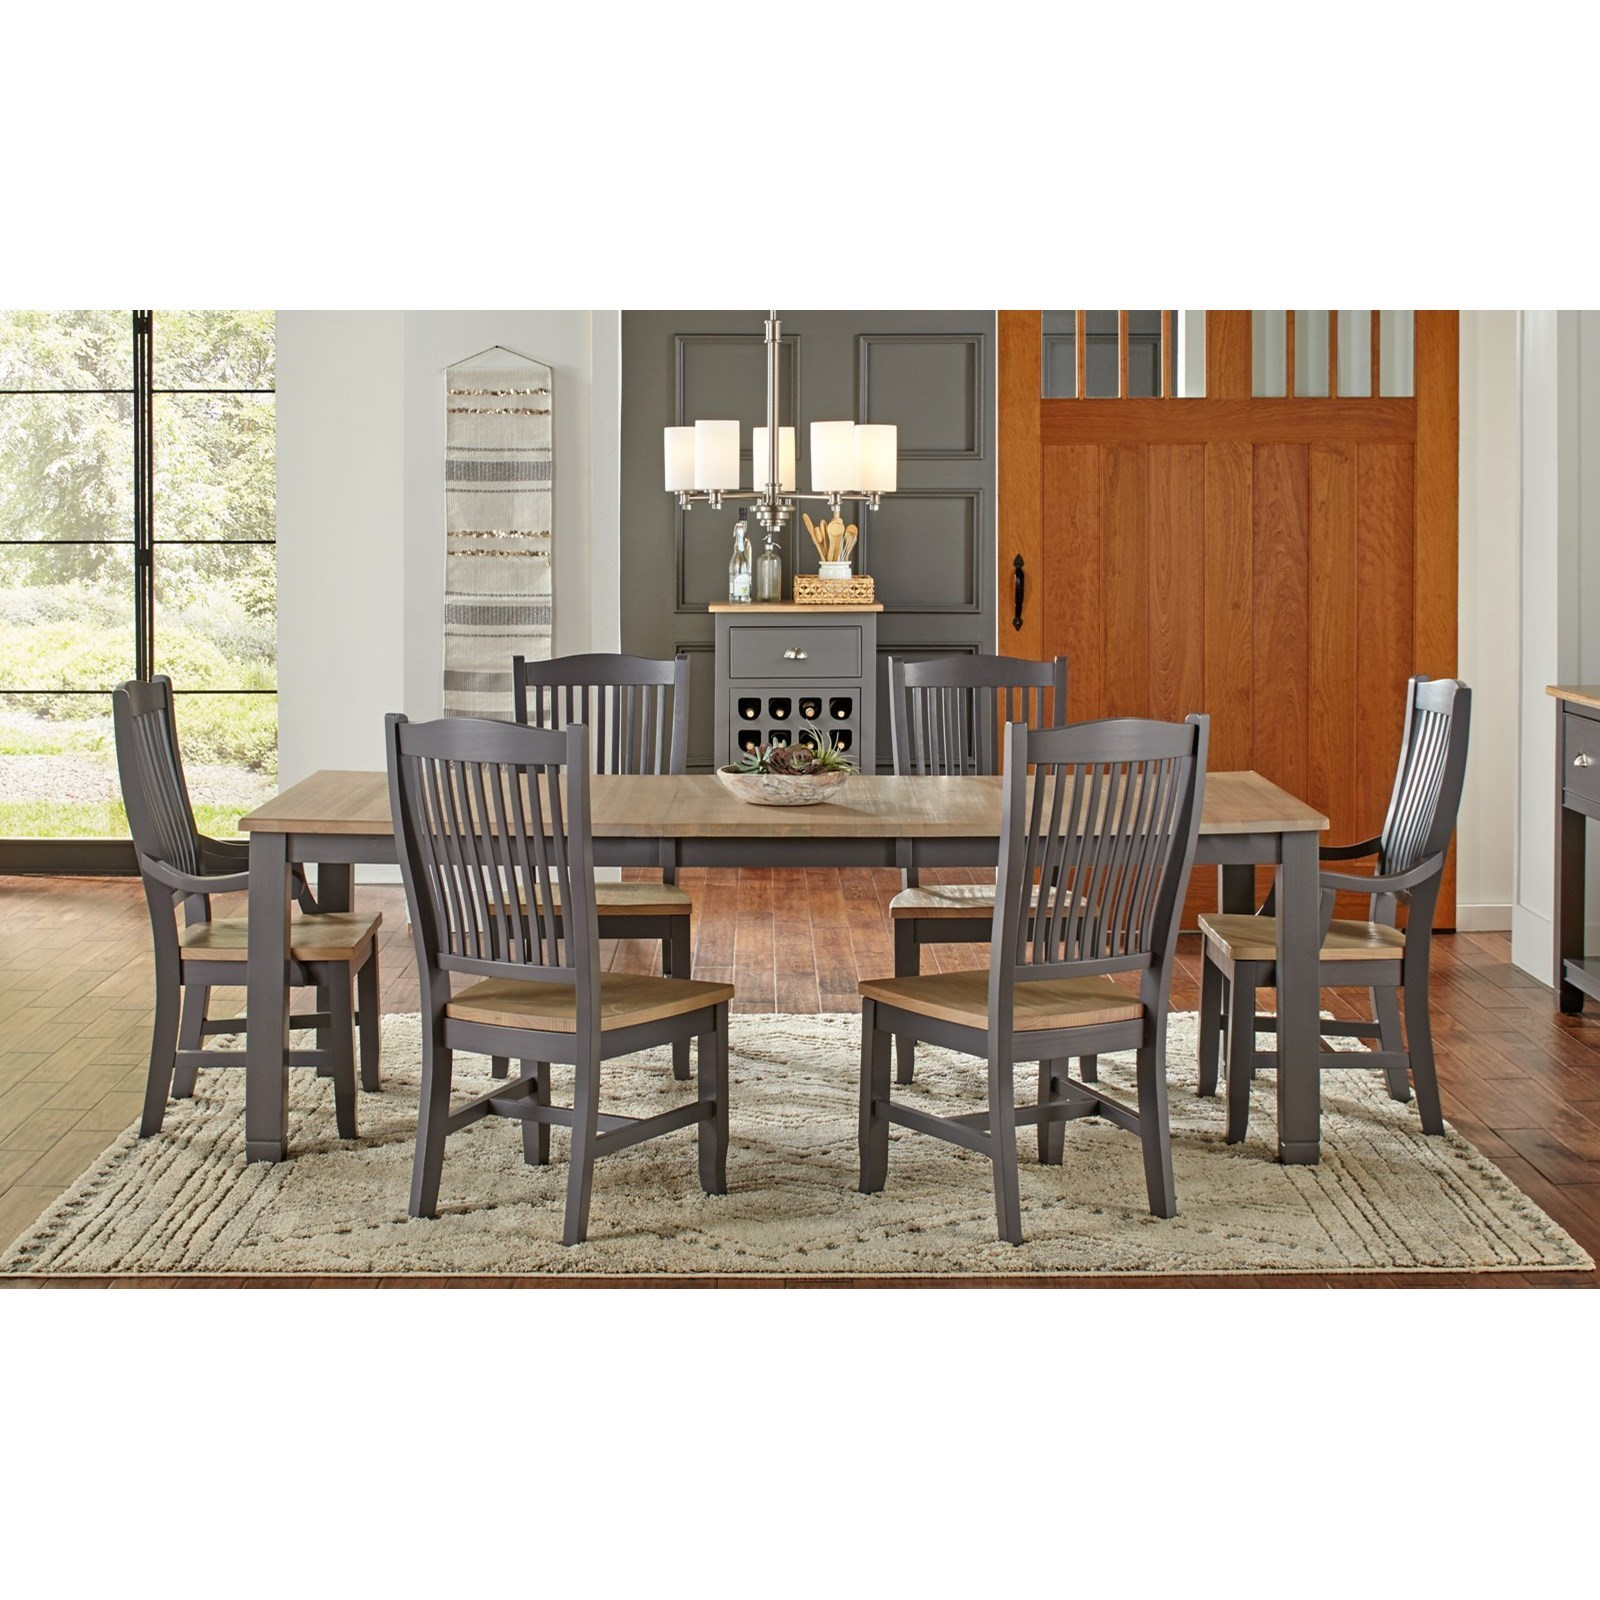 7 Pc Table & Chair Set- (Rectangle Table, 4 Side Chairs & 2 Arm Chairs)